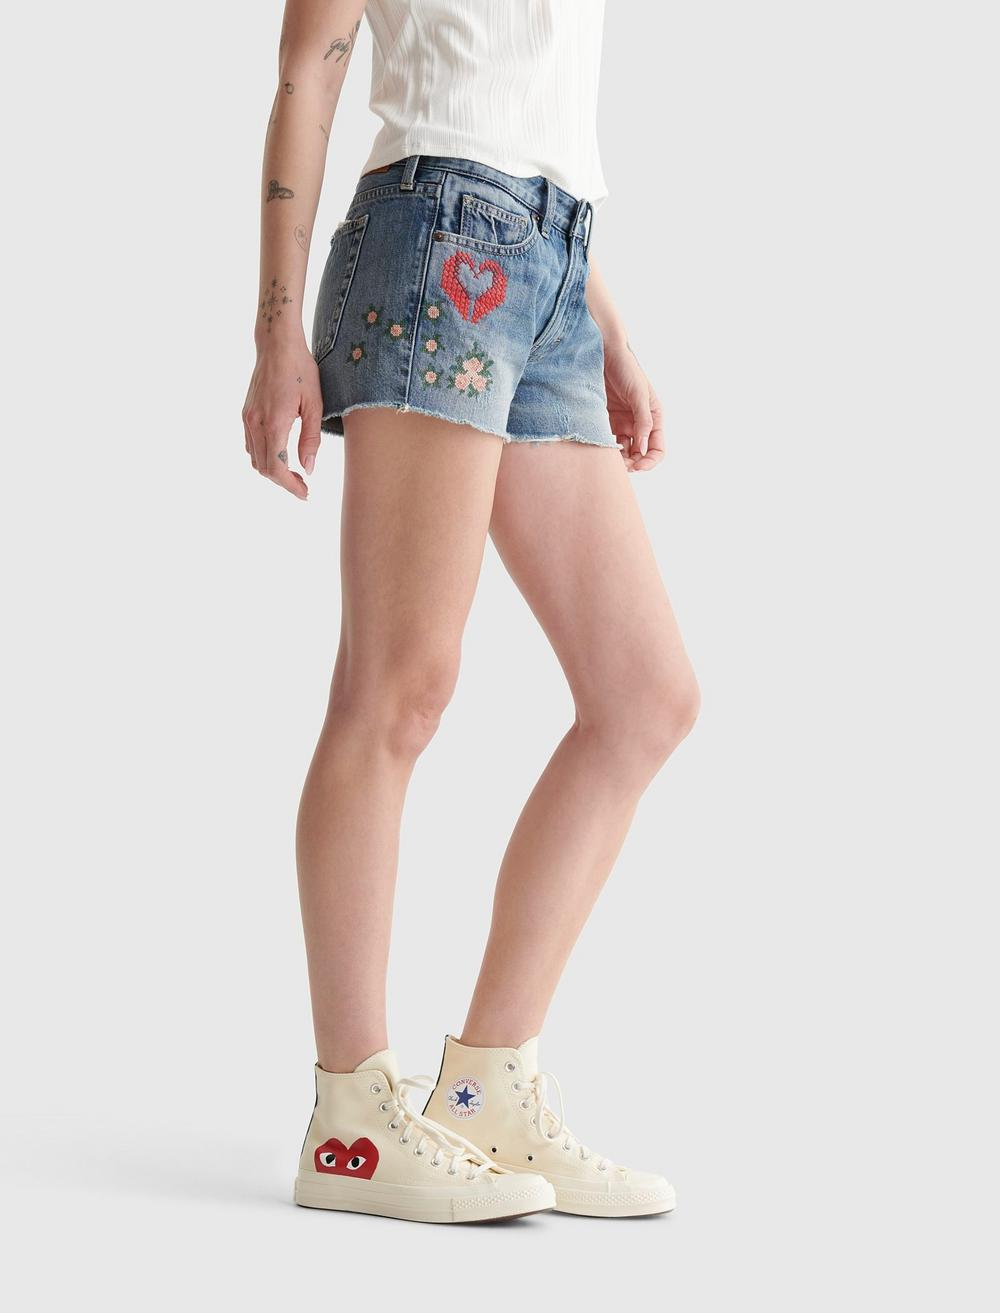 EMBROIDERED MID RISE BOY SHORT, image 3